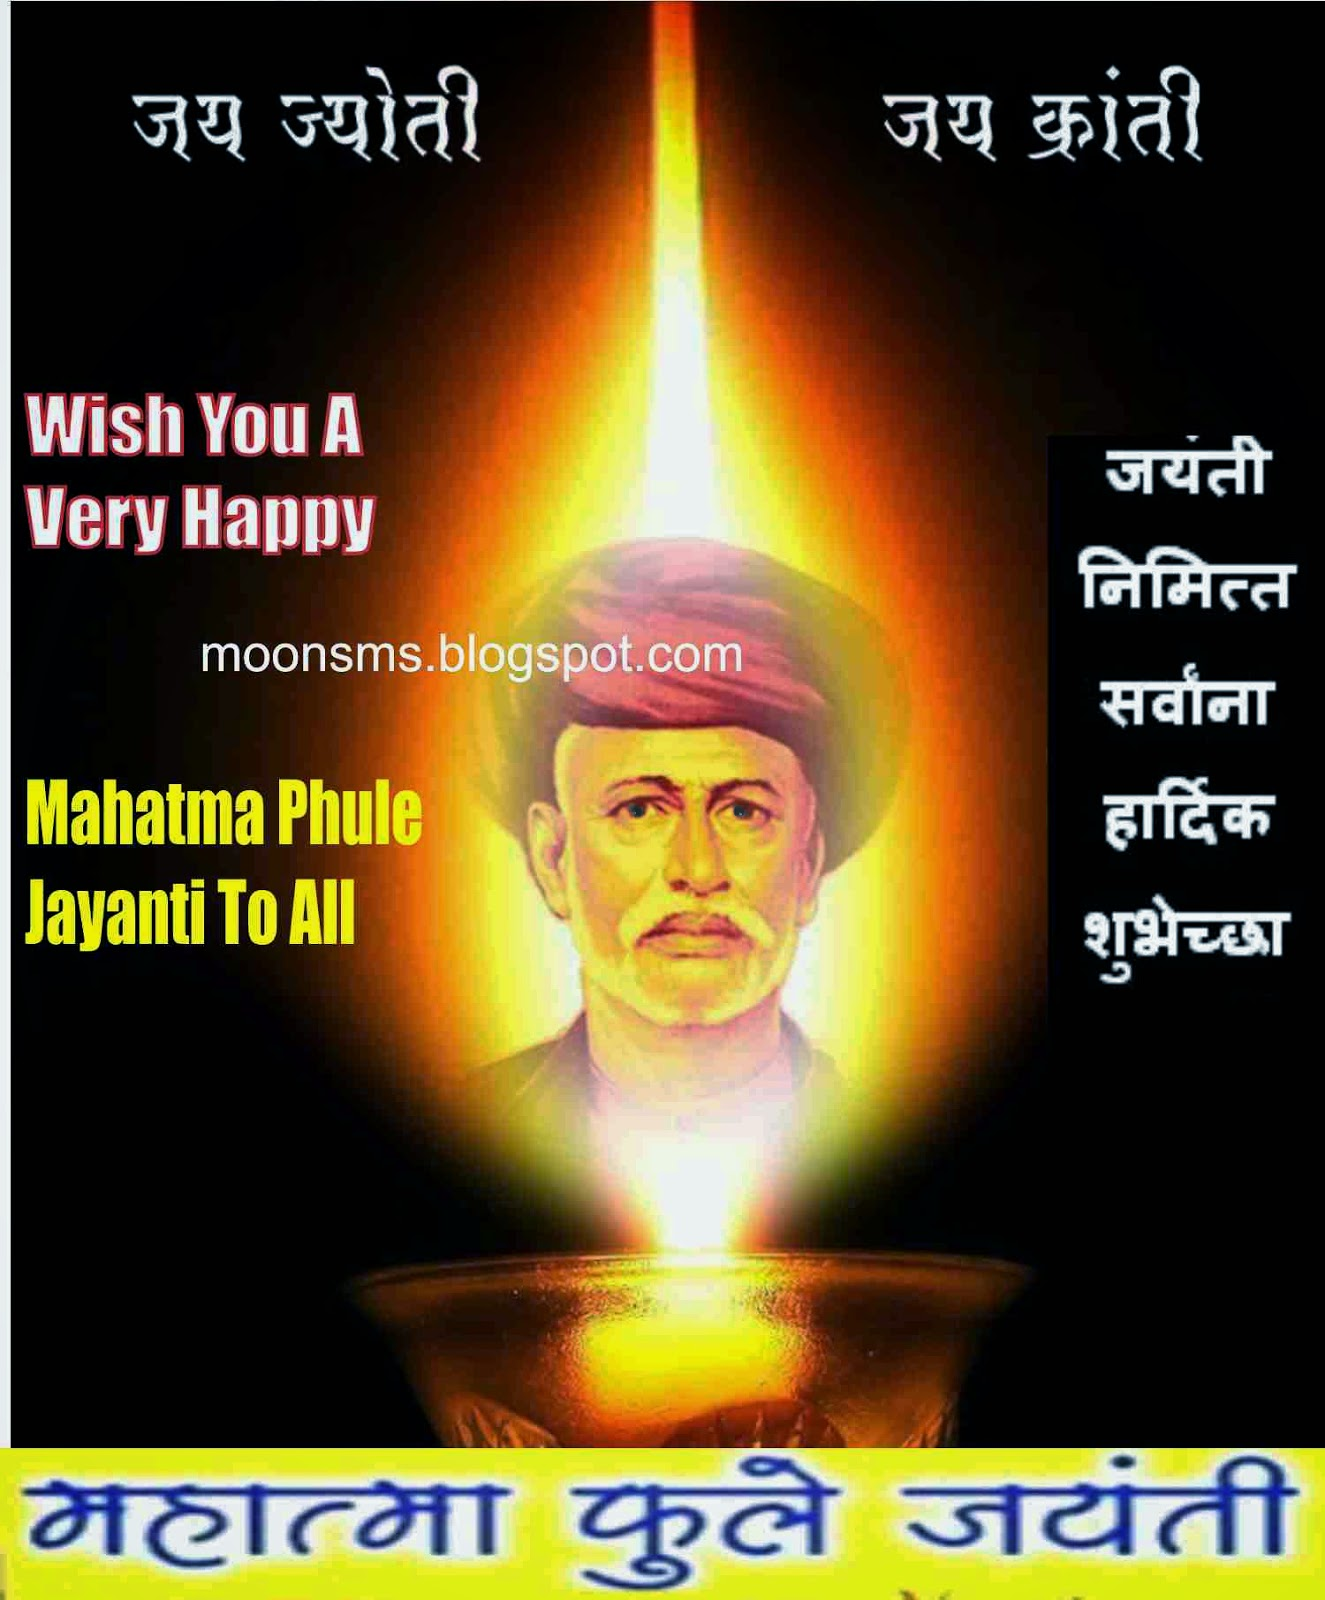 mahatma phule First, mahatma phule, in leading the low caste protest, put himself outside brahmanical culture system, and sought to create a counter-culture based on truth.